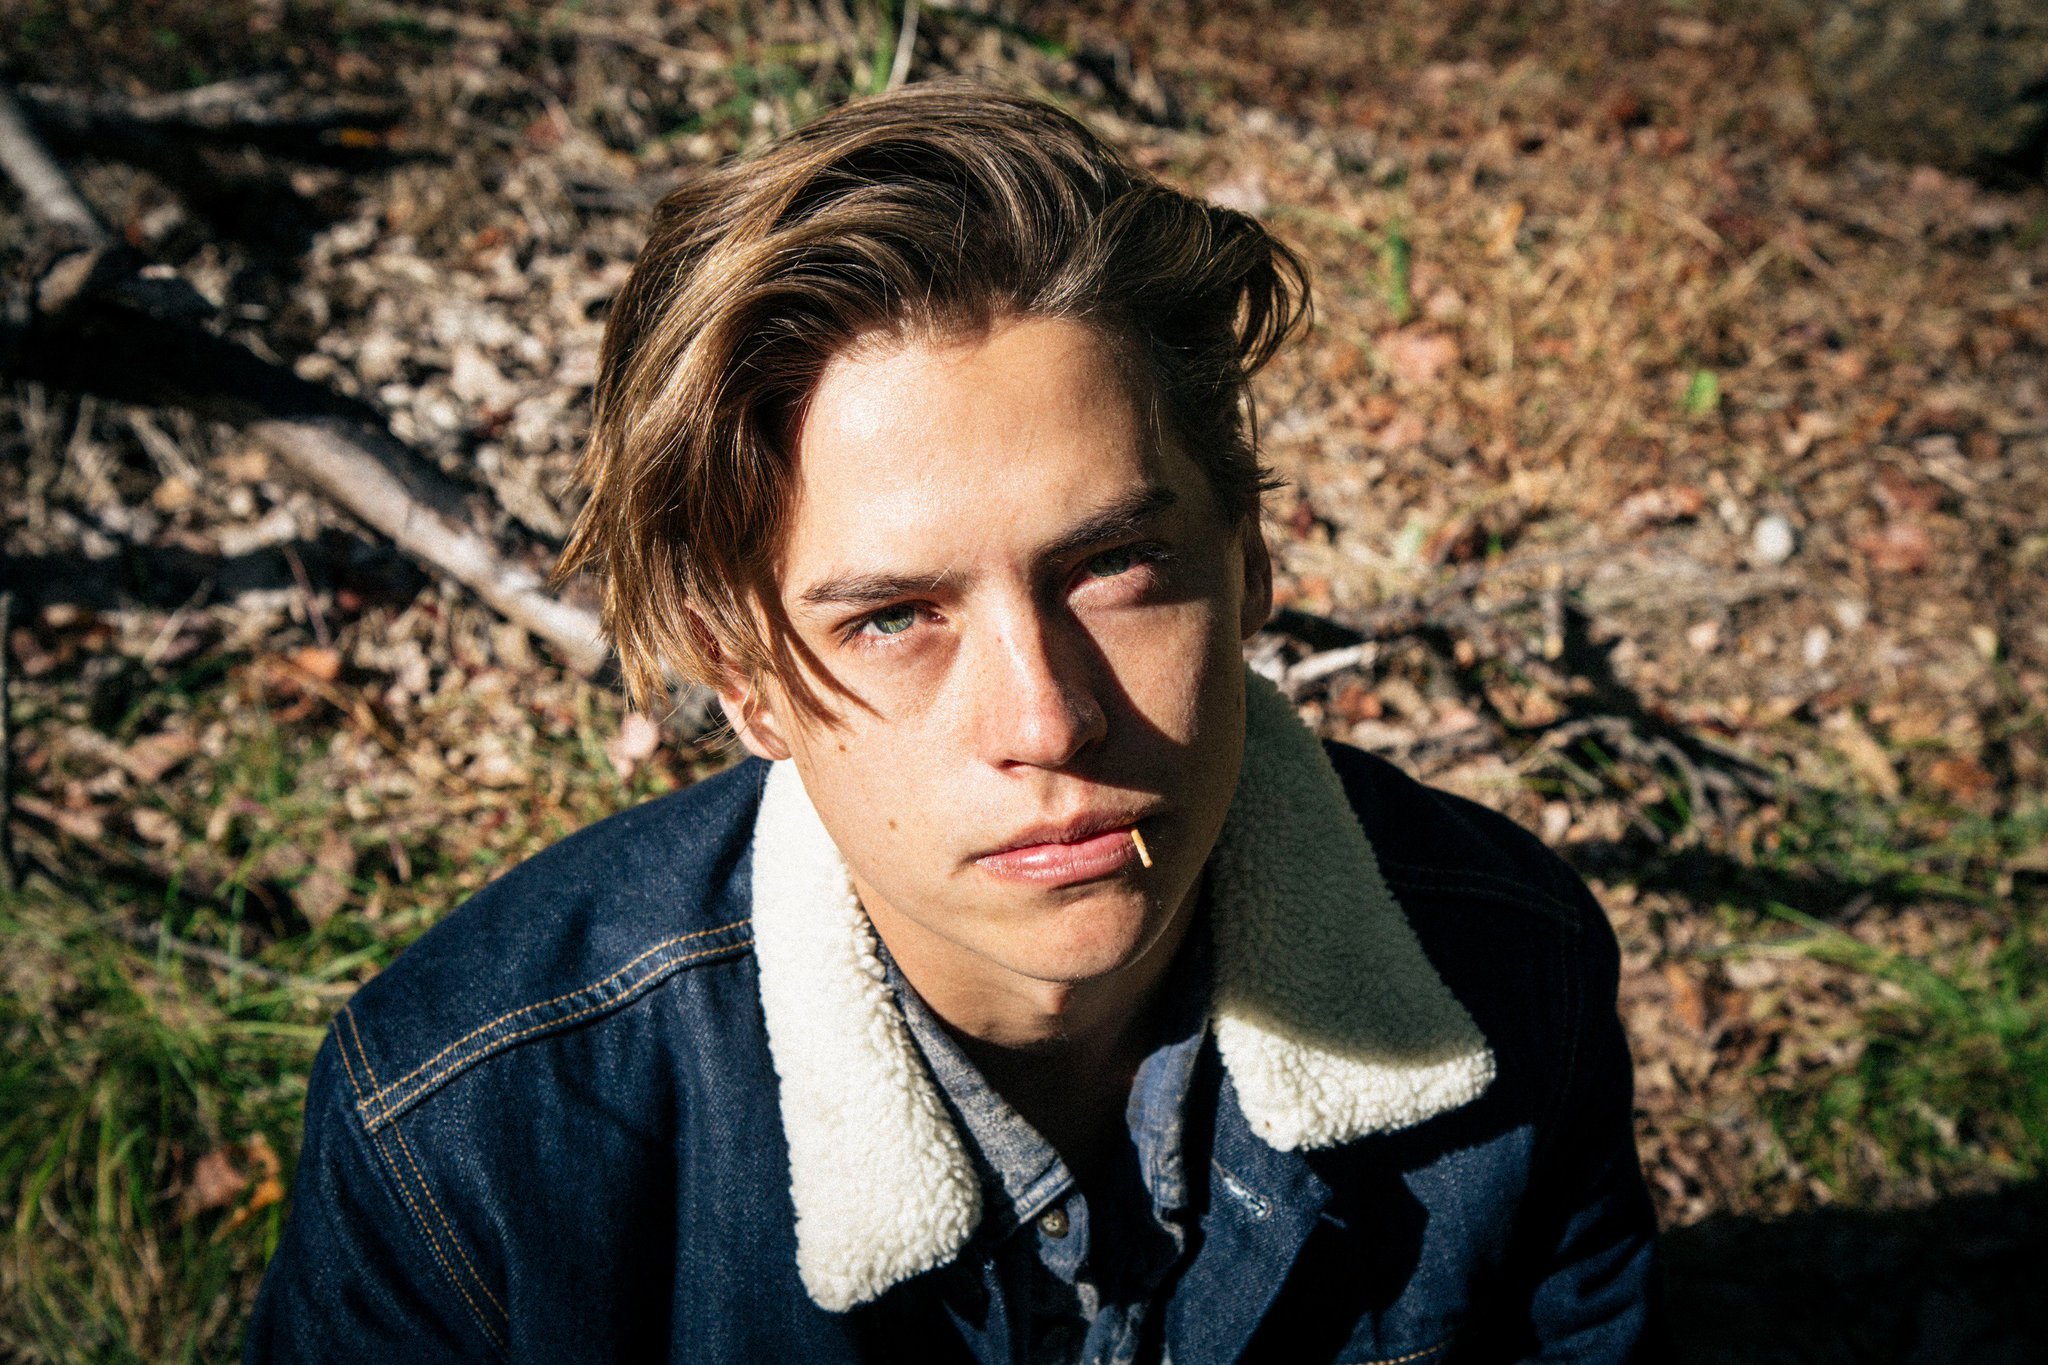 Cole M Sprouse On Twitter Quot You Came Here For Selfies And